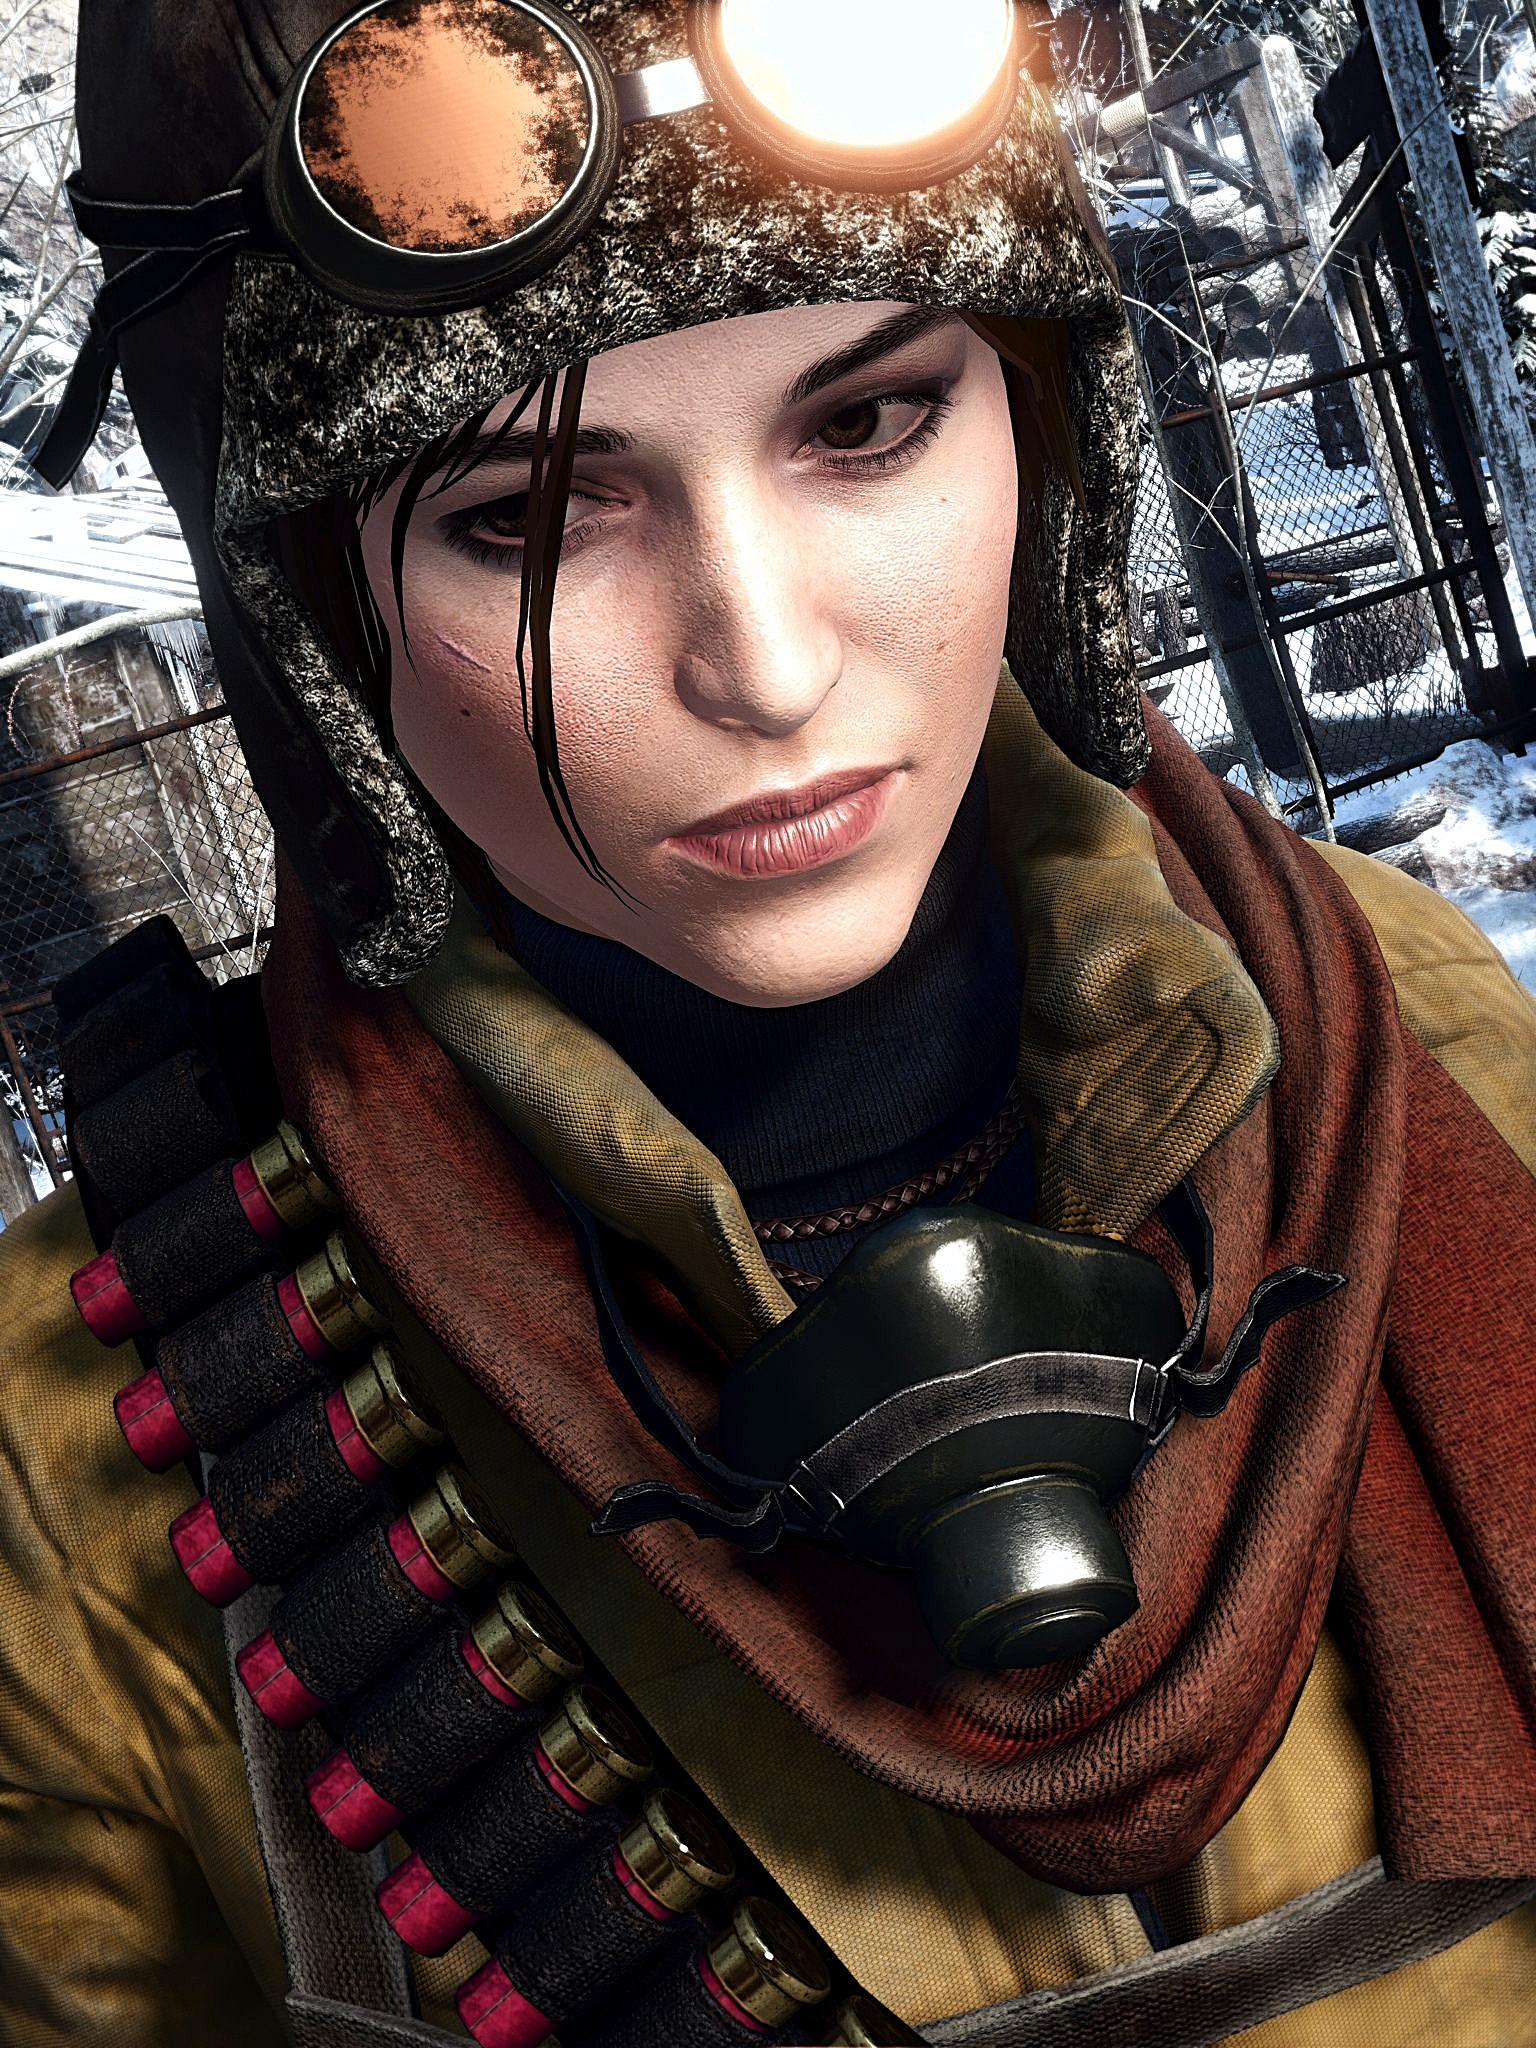 12536464_a (3).jpg - Rise of the Tomb Raider